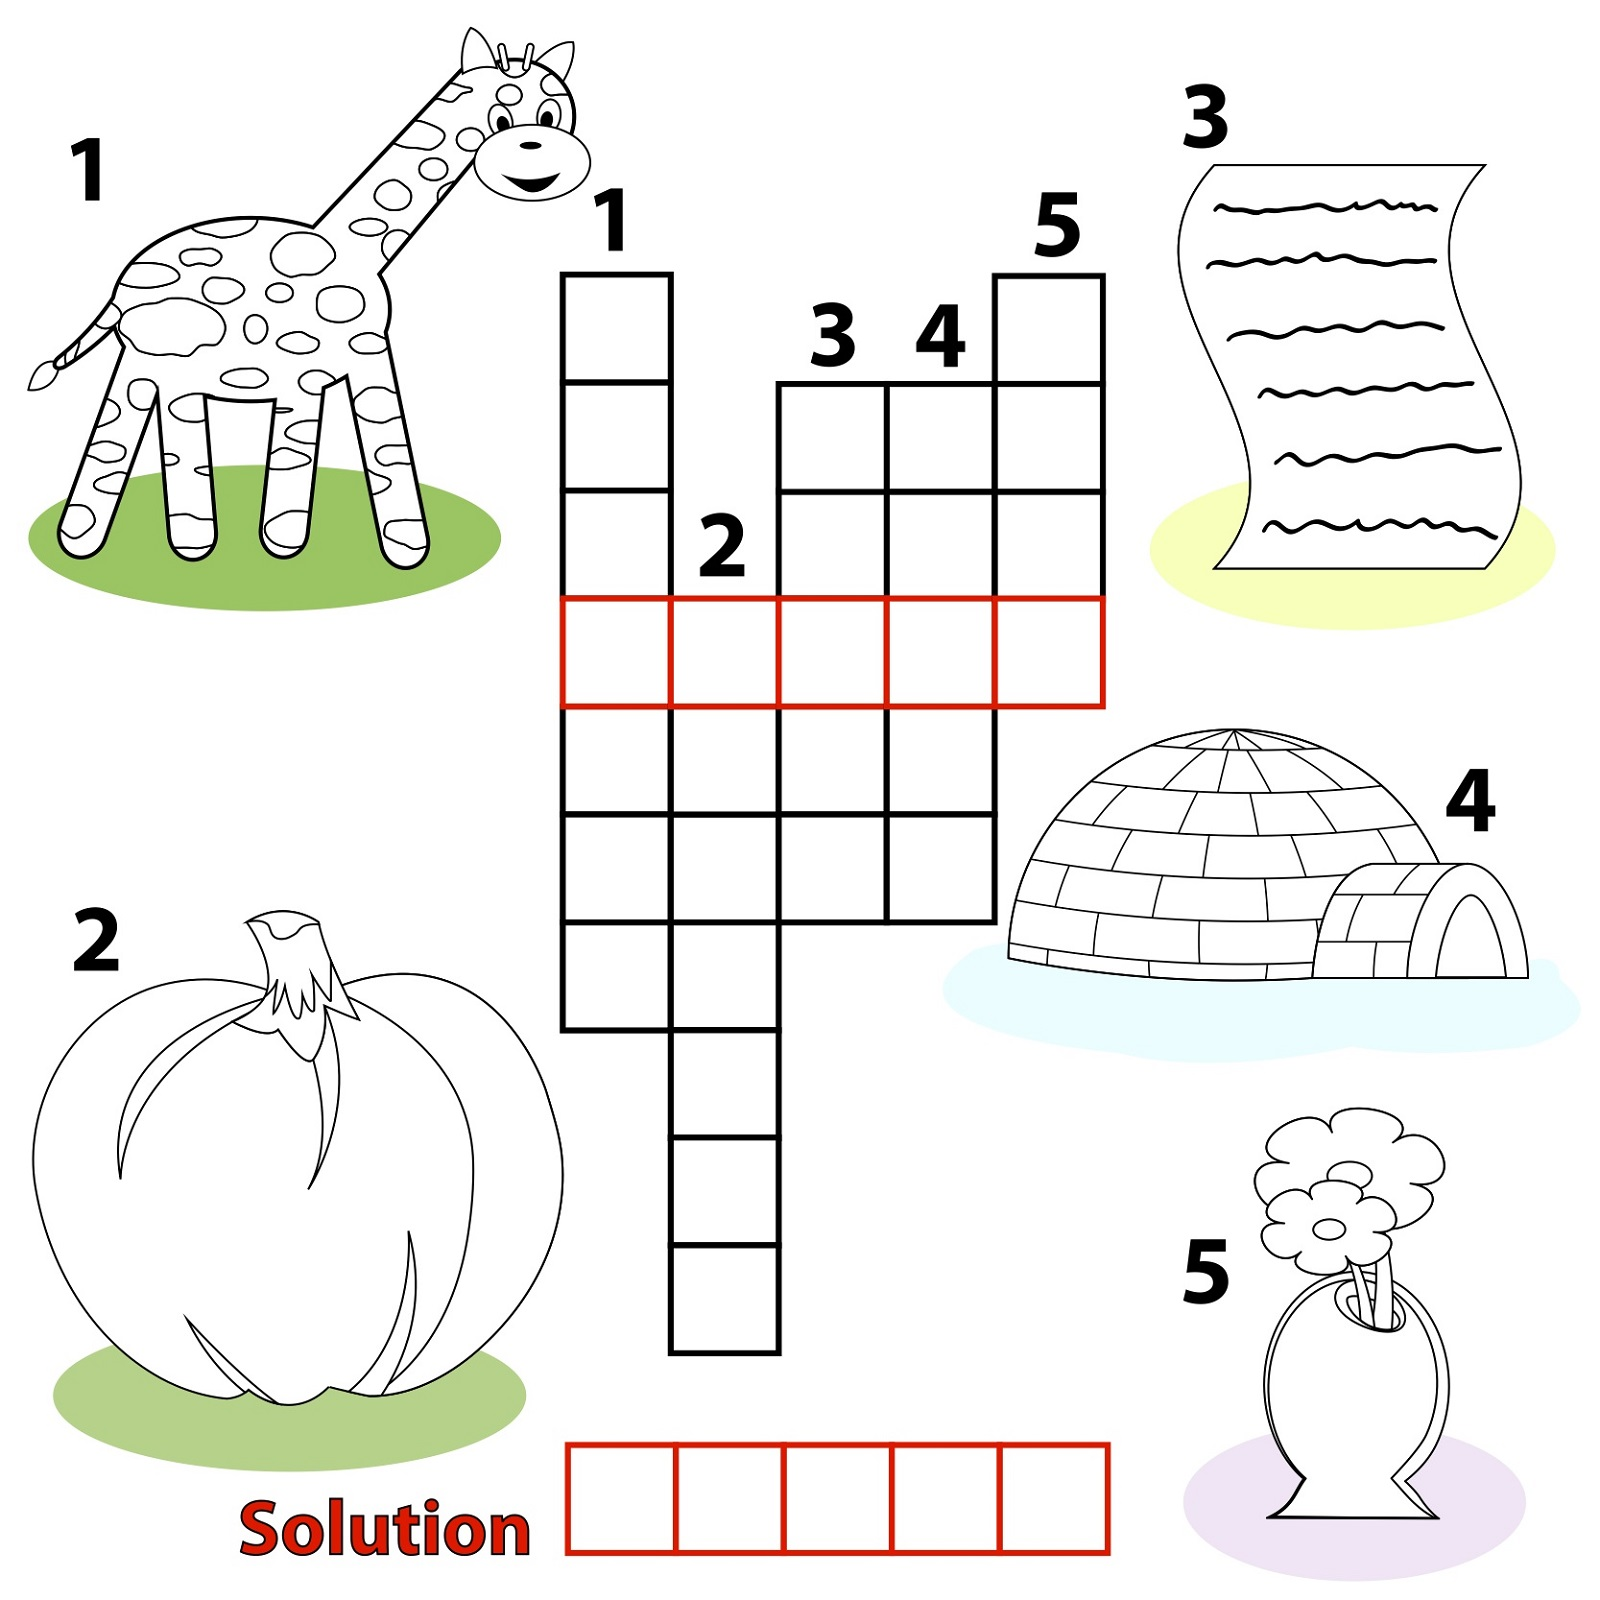 easy-crossword-puzzles-for-kids-simple